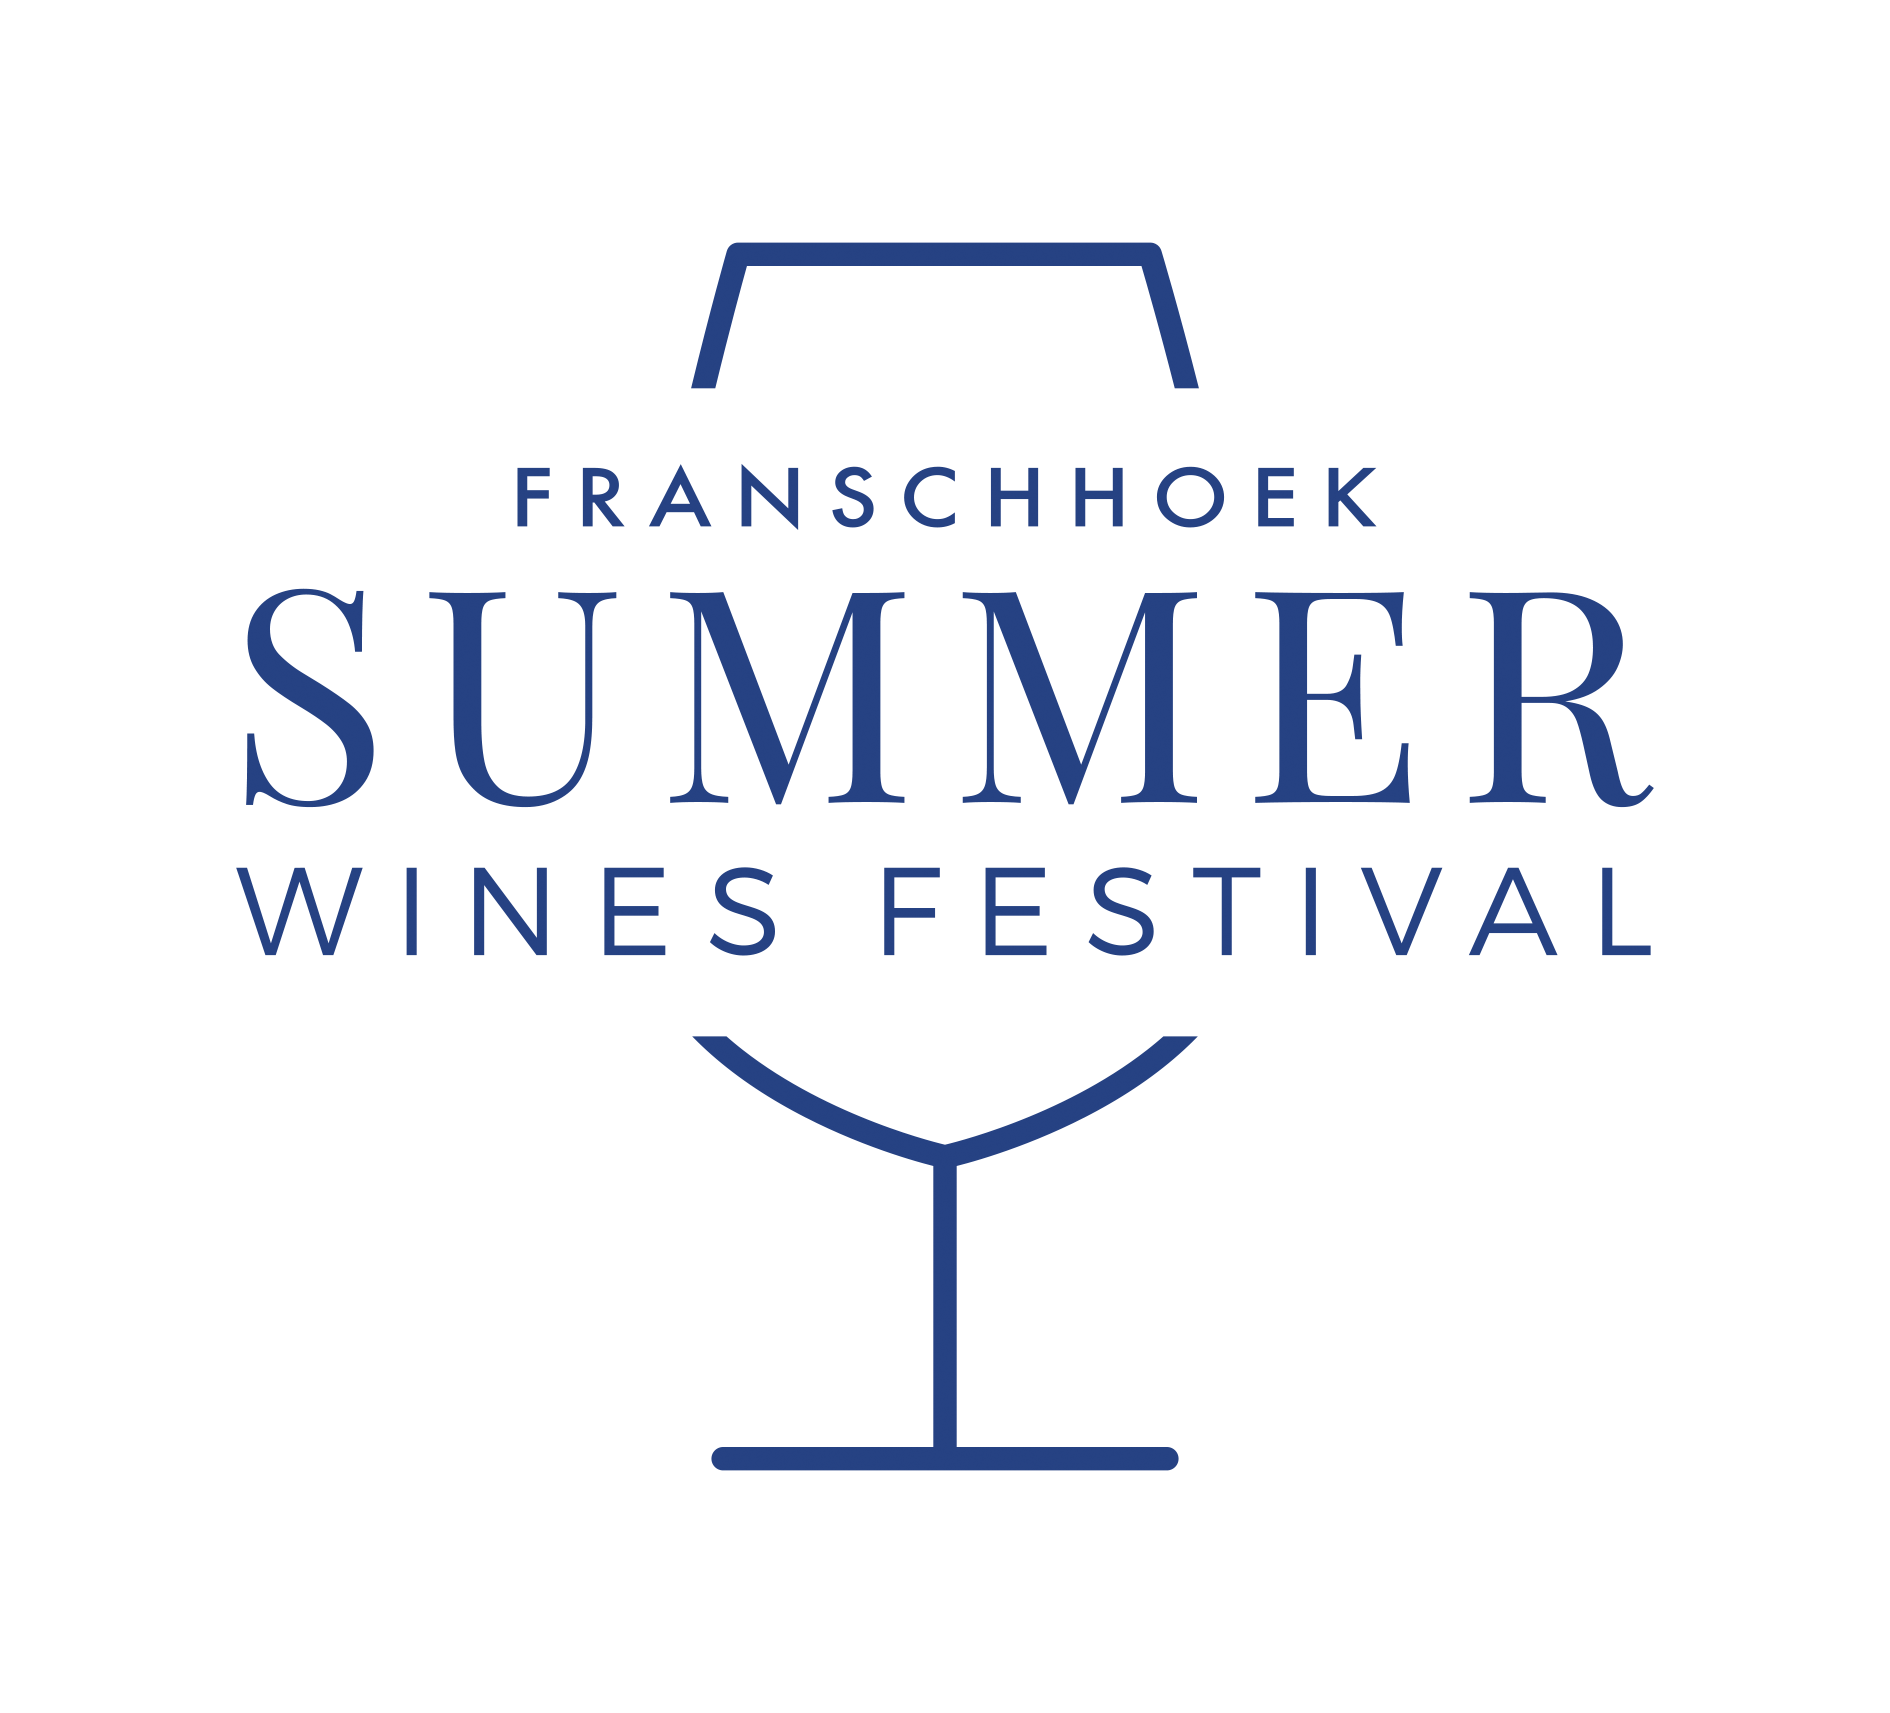 Franschhoek Wine Valley | Franschhoek Summer Wines